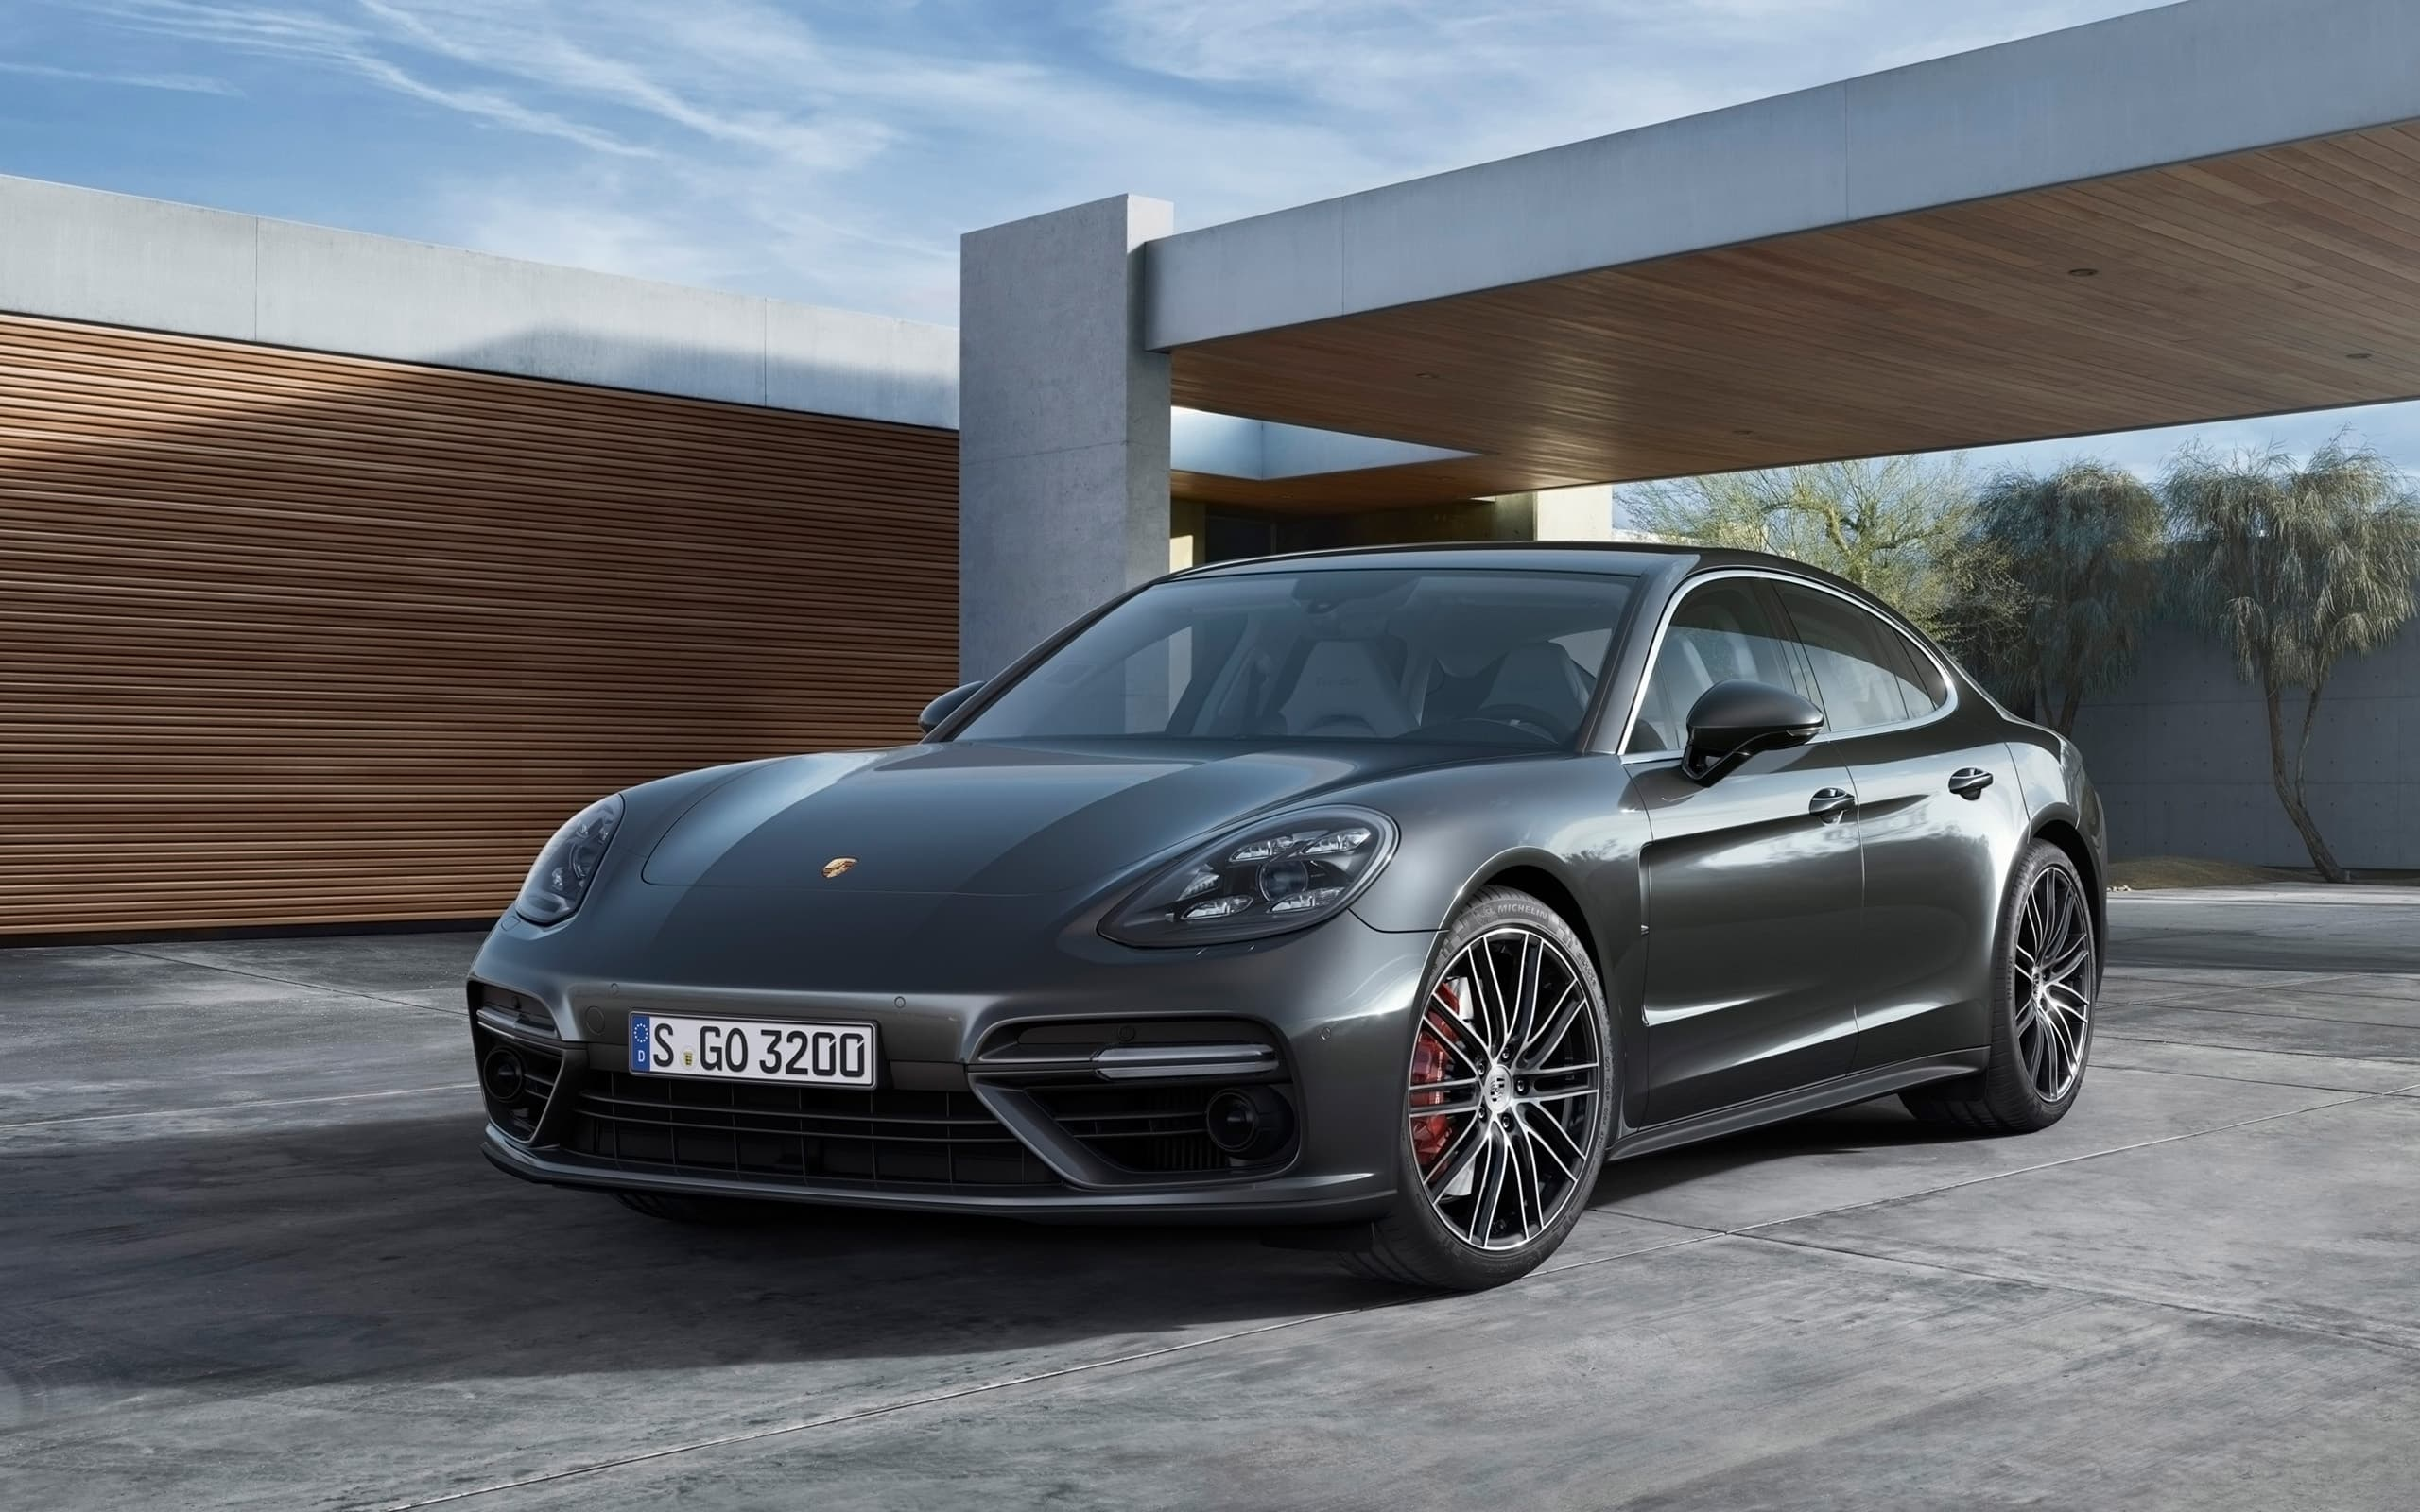 HD Porsche Panamera Turbo S 2017 wallpapers High Quality